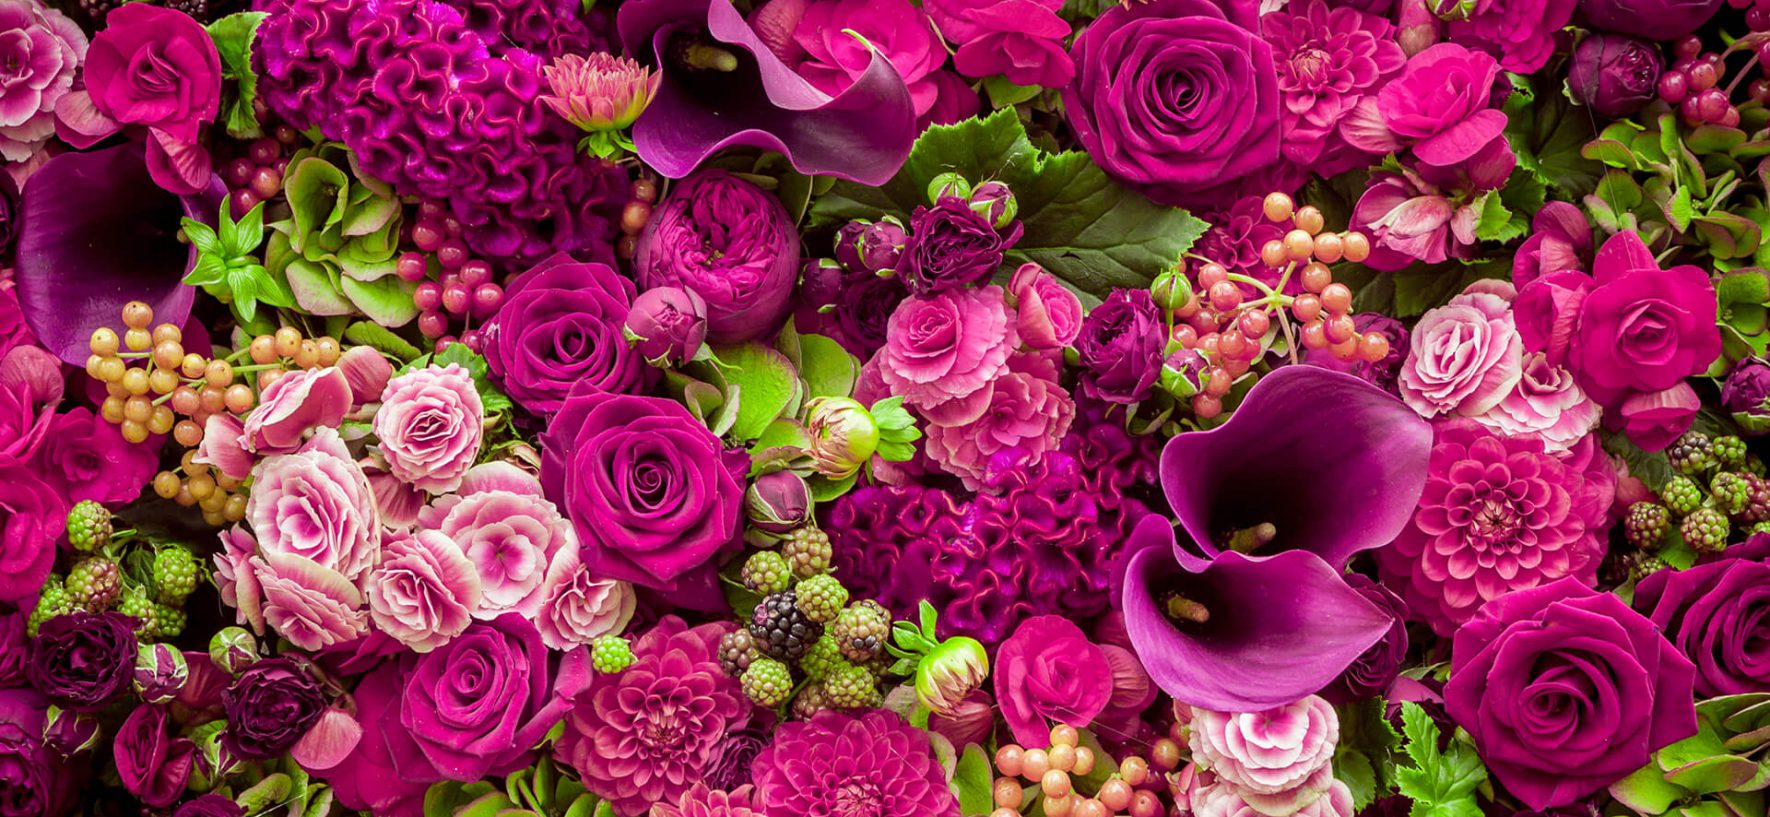 Which Country in the World Grows the Most Flowers?